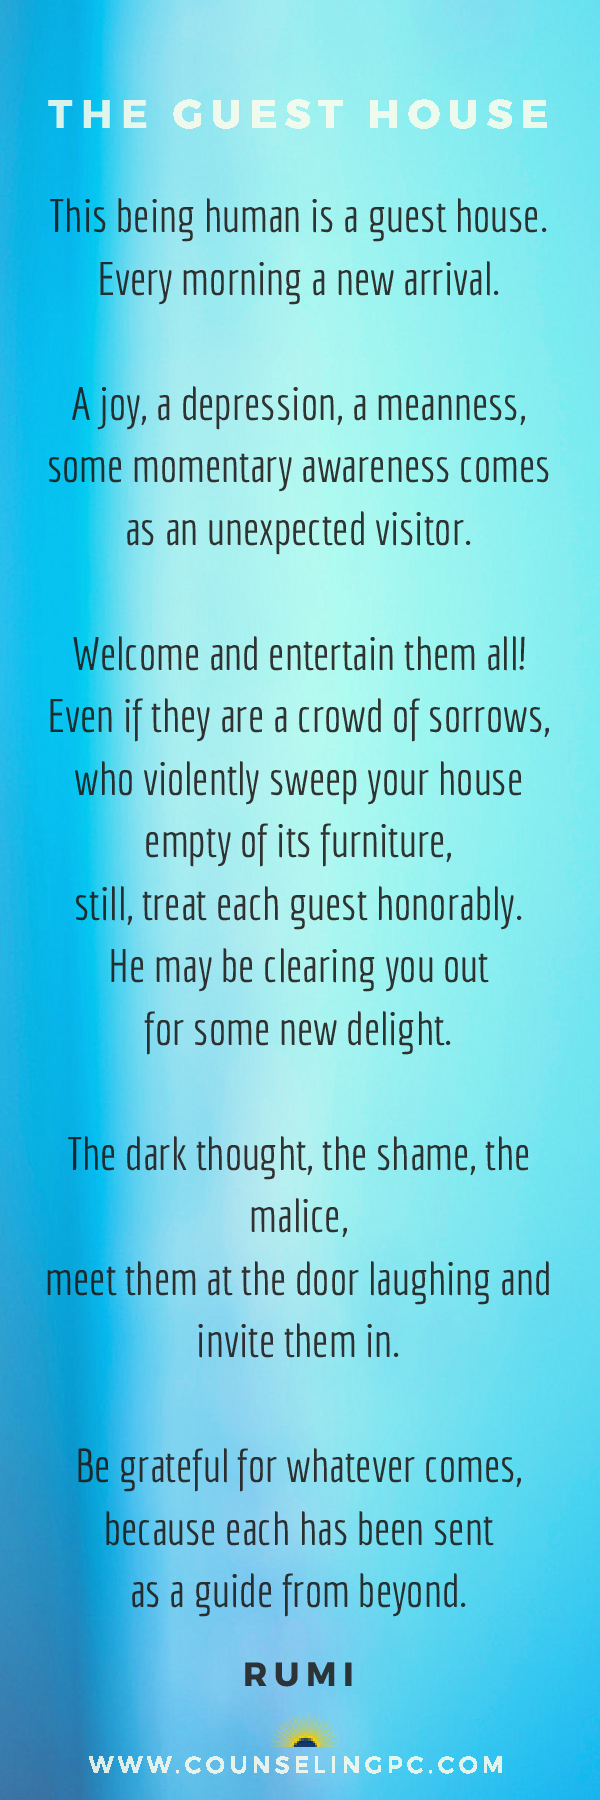 Counseling Space, P.C., Poem _ The Guest House_ by RUMI.jpg